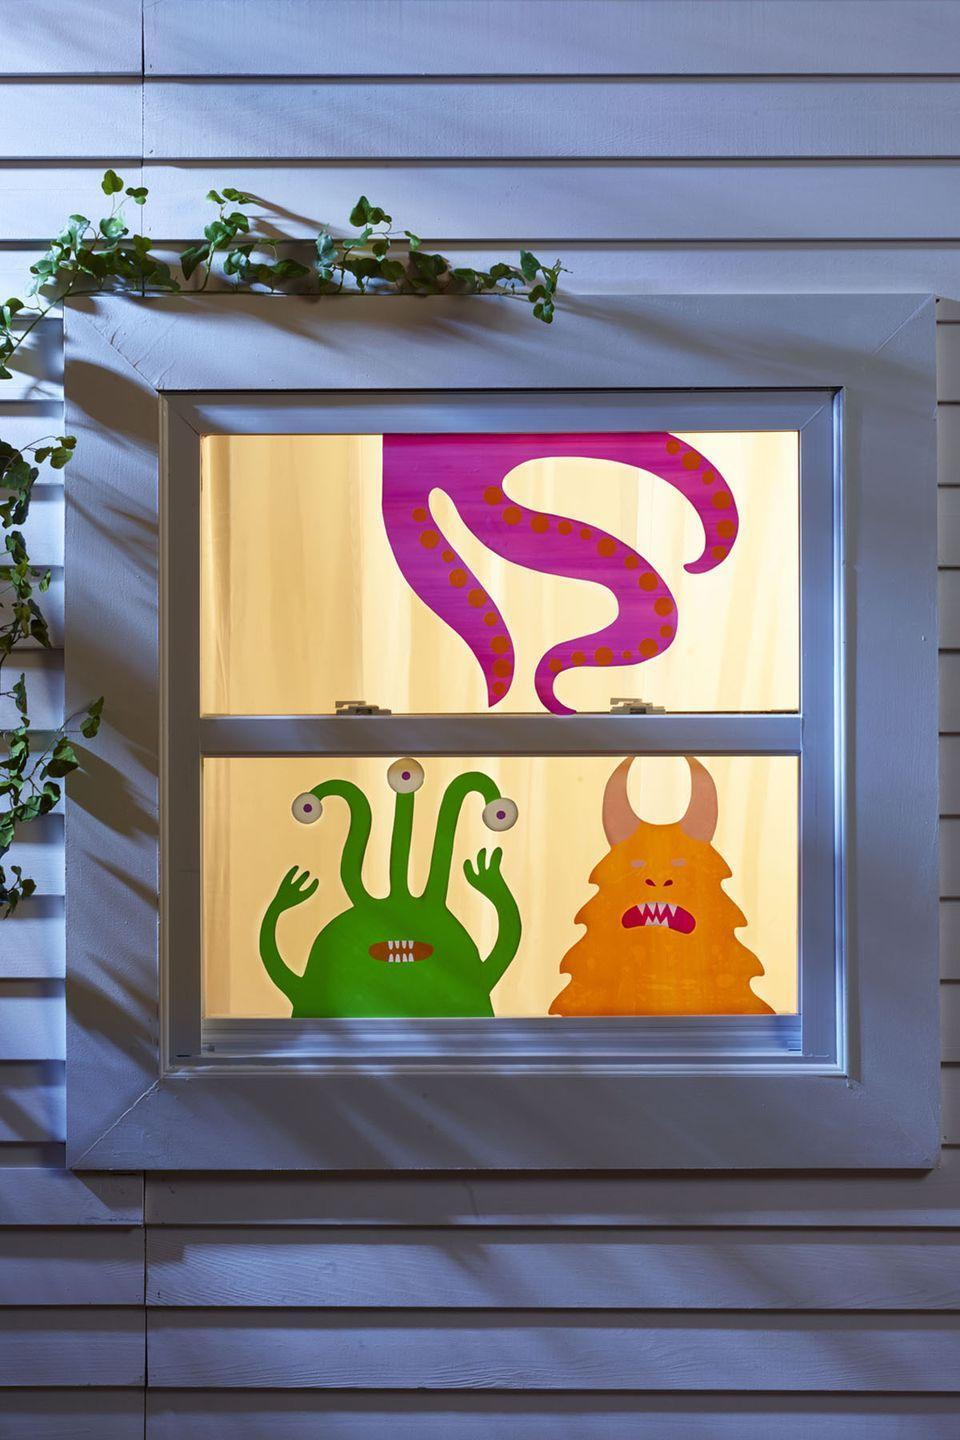 """<p>These colorful creatures can keep an eye on the neighborhood even when you're not home. Print the templates, then trace, and cut them out from contact paper.</p><p><em><a href=""""https://www.womansday.com/home/crafts-projects/g3200/halloween-2017-templates/"""" rel=""""nofollow noopener"""" target=""""_blank"""" data-ylk=""""slk:Get the Neighborhood Watch template"""" class=""""link rapid-noclick-resp"""">Get the Neighborhood Watch template</a>.</em></p><p><strong>What You'll Need</strong>: <a href=""""https://www.amazon.com/Tact-Brand-Covering-Self-Adhesive-Semi-Transparent/dp/B00R8AWBJI/ref=sr_1_1?dchild=1&keywords=contact+paper&qid=1595003262&sr=8-1&tag=syn-yahoo-20&ascsubtag=%5Bartid%7C10070.g.1279%5Bsrc%7Cyahoo-us"""" rel=""""nofollow noopener"""" target=""""_blank"""" data-ylk=""""slk:Contact paper"""" class=""""link rapid-noclick-resp"""">Contact paper </a>($6, Amazon); colored <a href=""""https://www.amazon.com/Astrobrights-Spectrum-25-Color-Assortment-80933-01/dp/B01GUUARV0/ref=sr_1_8?dchild=1&keywords=colored+construction&qid=1595003315&sr=8-8&tag=syn-yahoo-20&ascsubtag=%5Bartid%7C10070.g.1279%5Bsrc%7Cyahoo-us"""" rel=""""nofollow noopener"""" target=""""_blank"""" data-ylk=""""slk:construction paper"""" class=""""link rapid-noclick-resp"""">construction paper </a>($7, Amazon)<br></p>"""